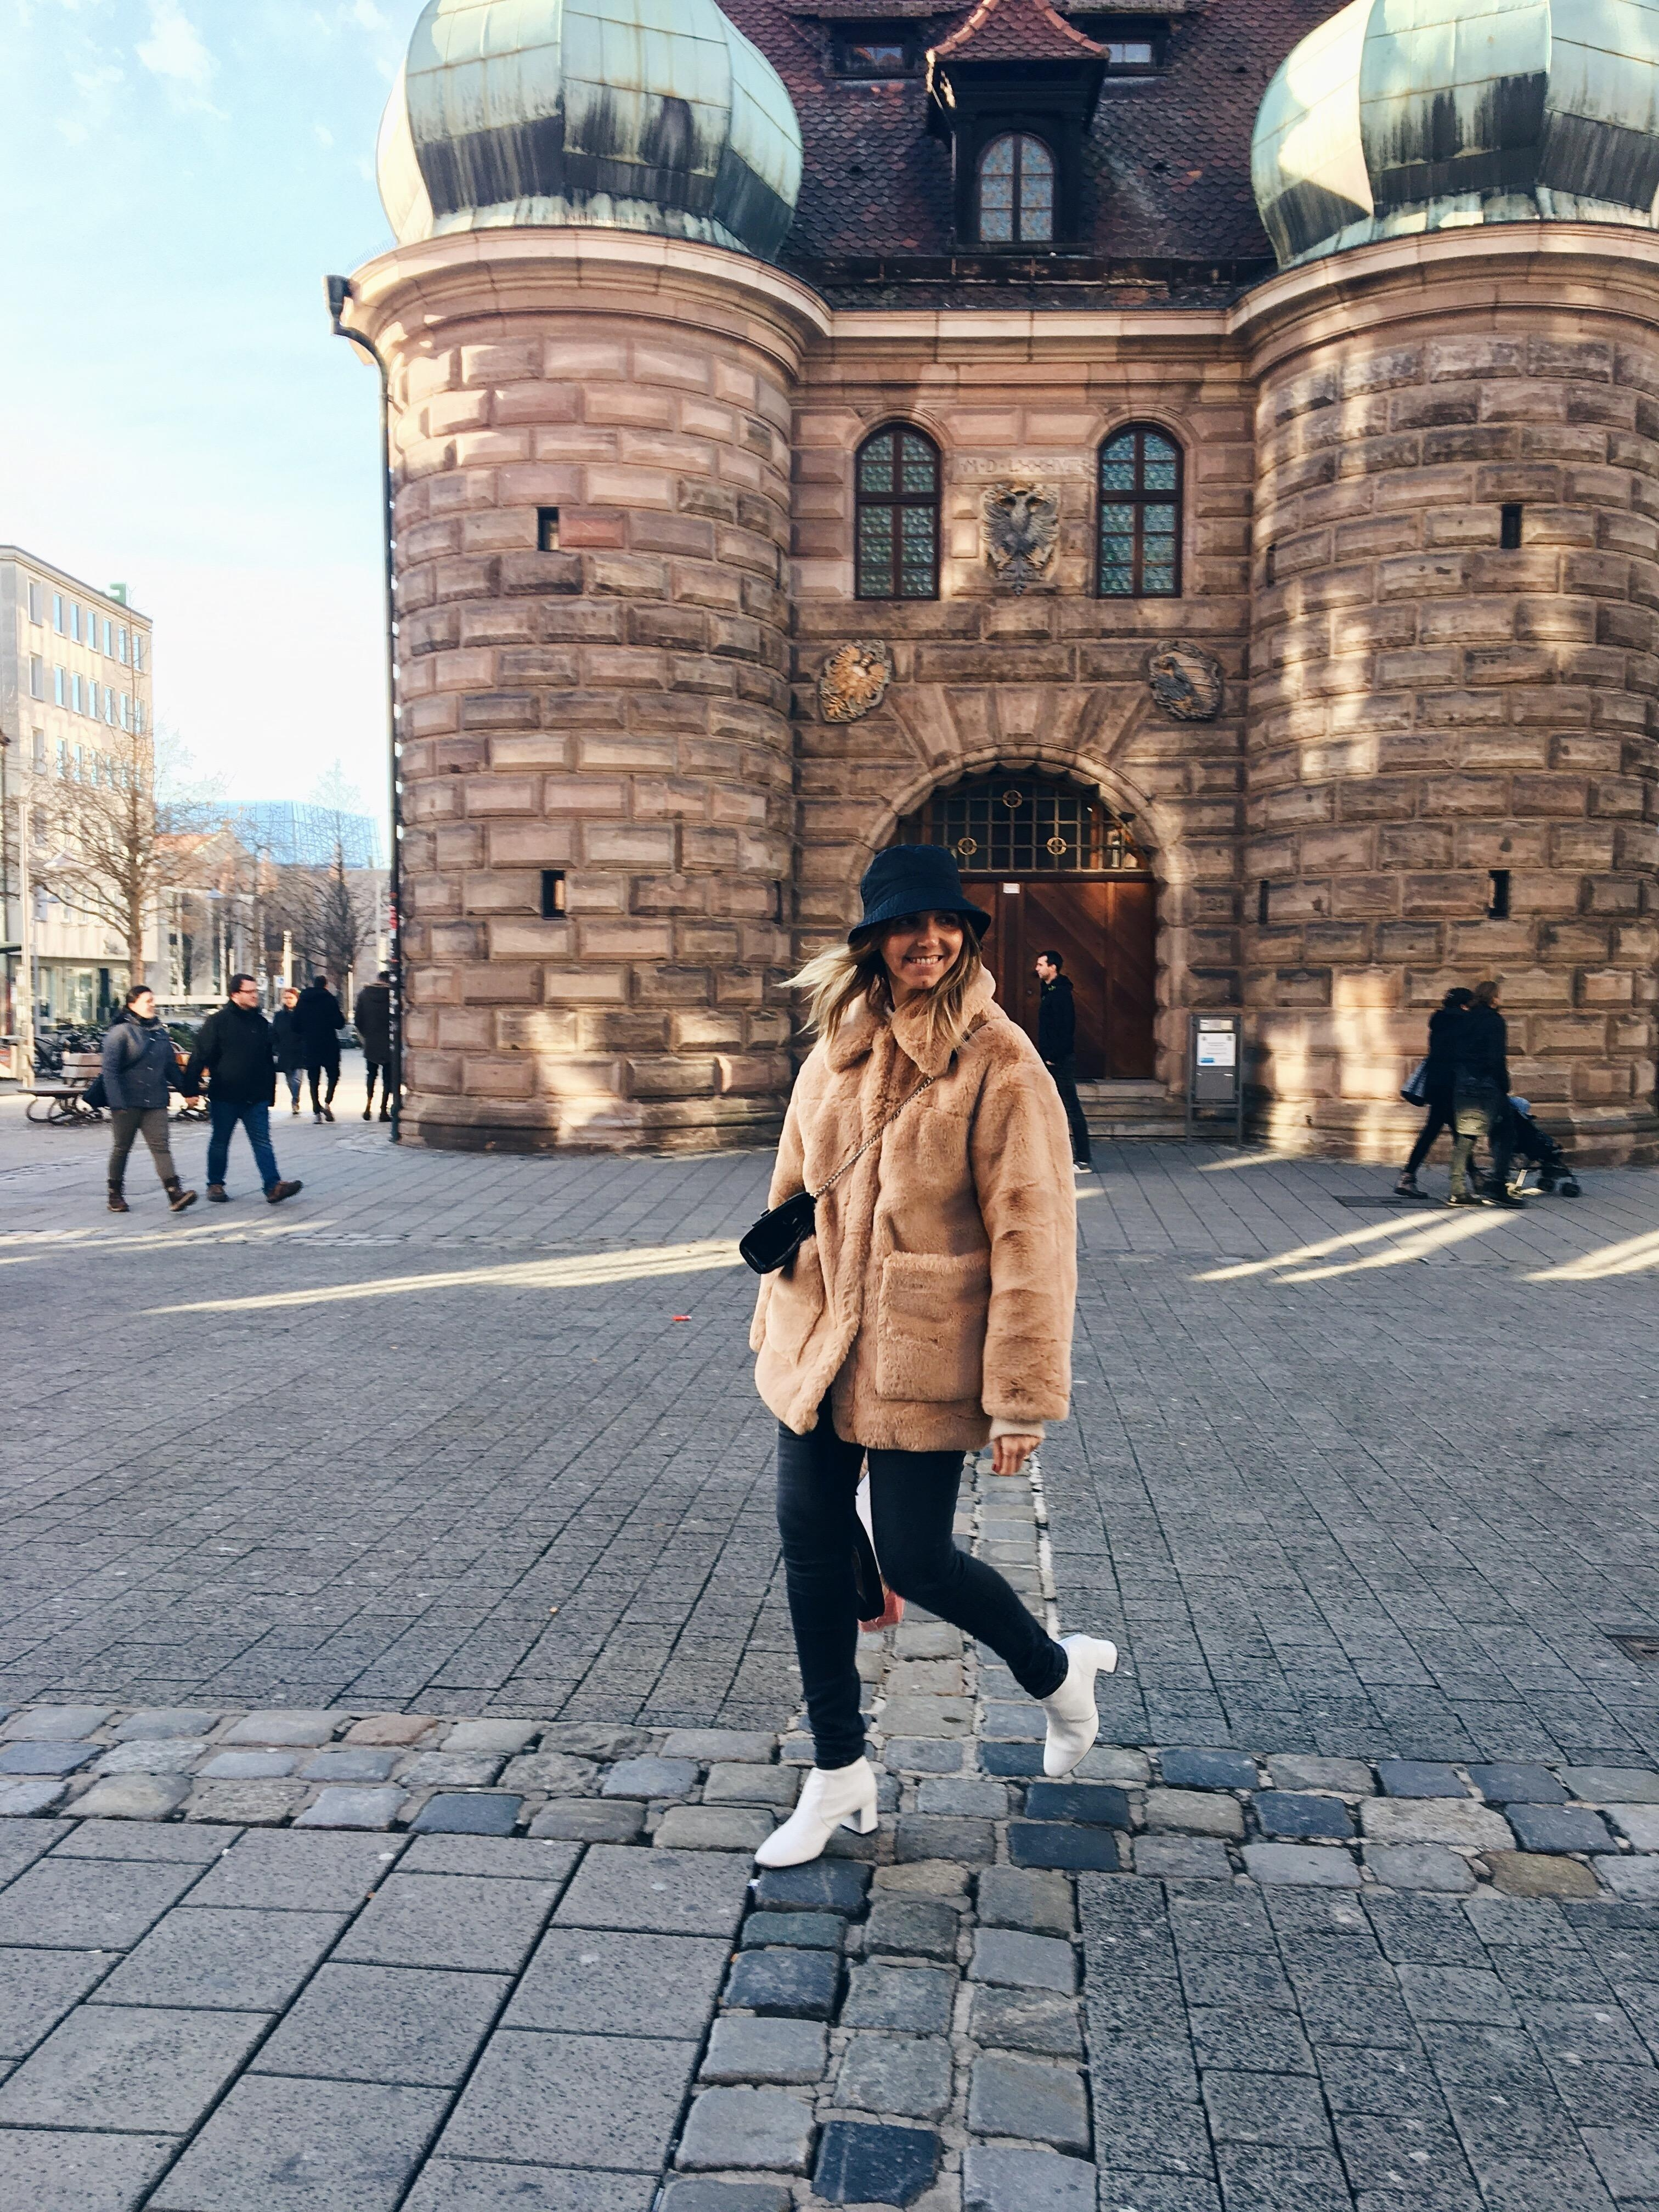 Russian vibes in Nuremberg #weekendvibes #weekendmood -#streetstyle #streetwear #streetfashion #cityphotografy #fashion